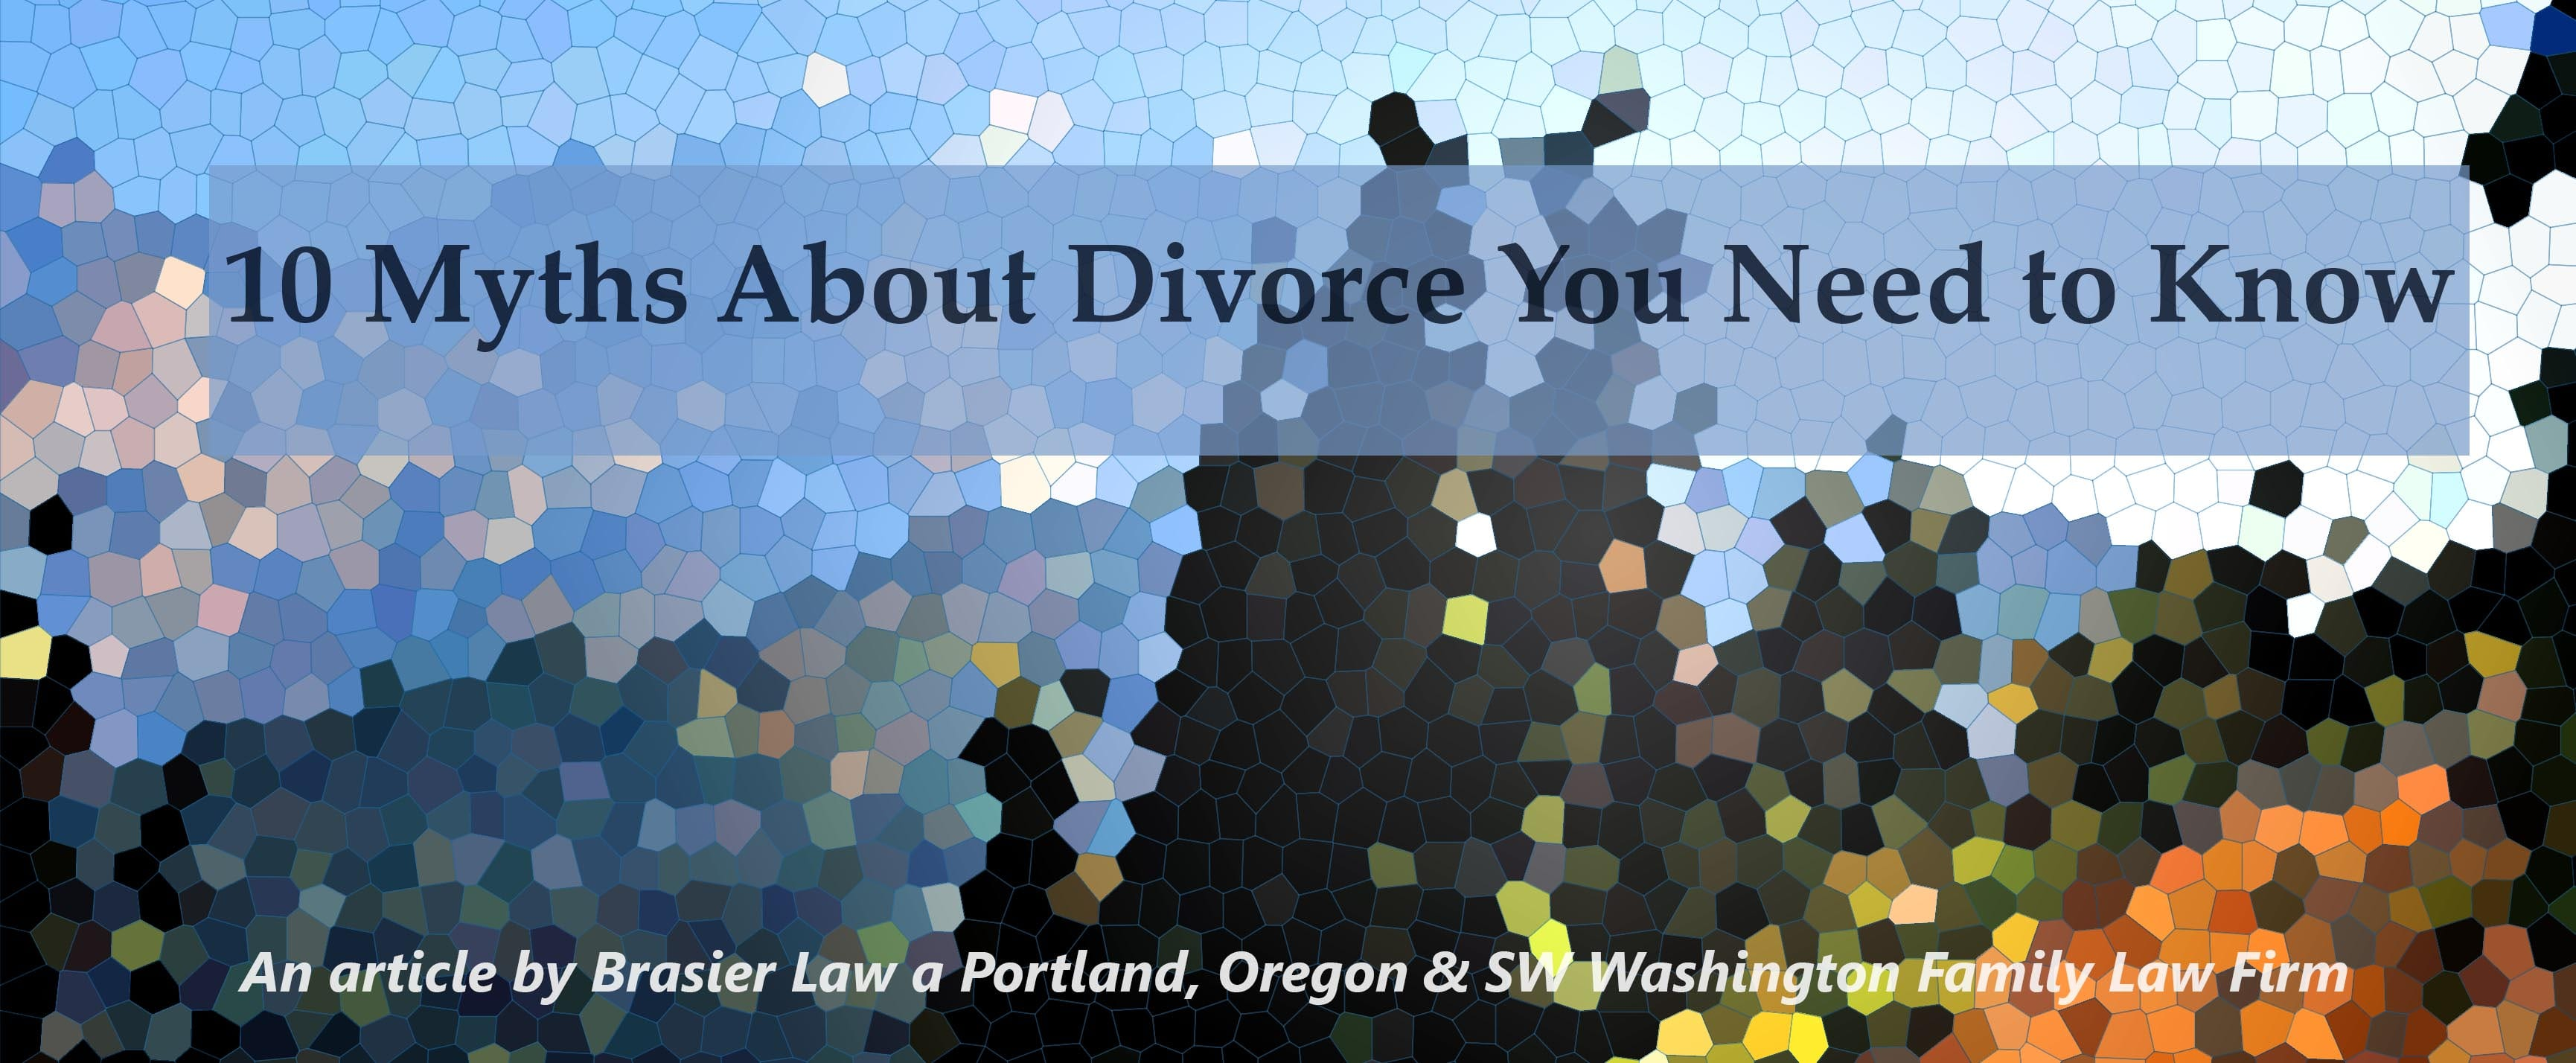 10 Myths About Divorce, an article by Portland, Oregon & SW Washington Family Law Attorney Tom Brasier